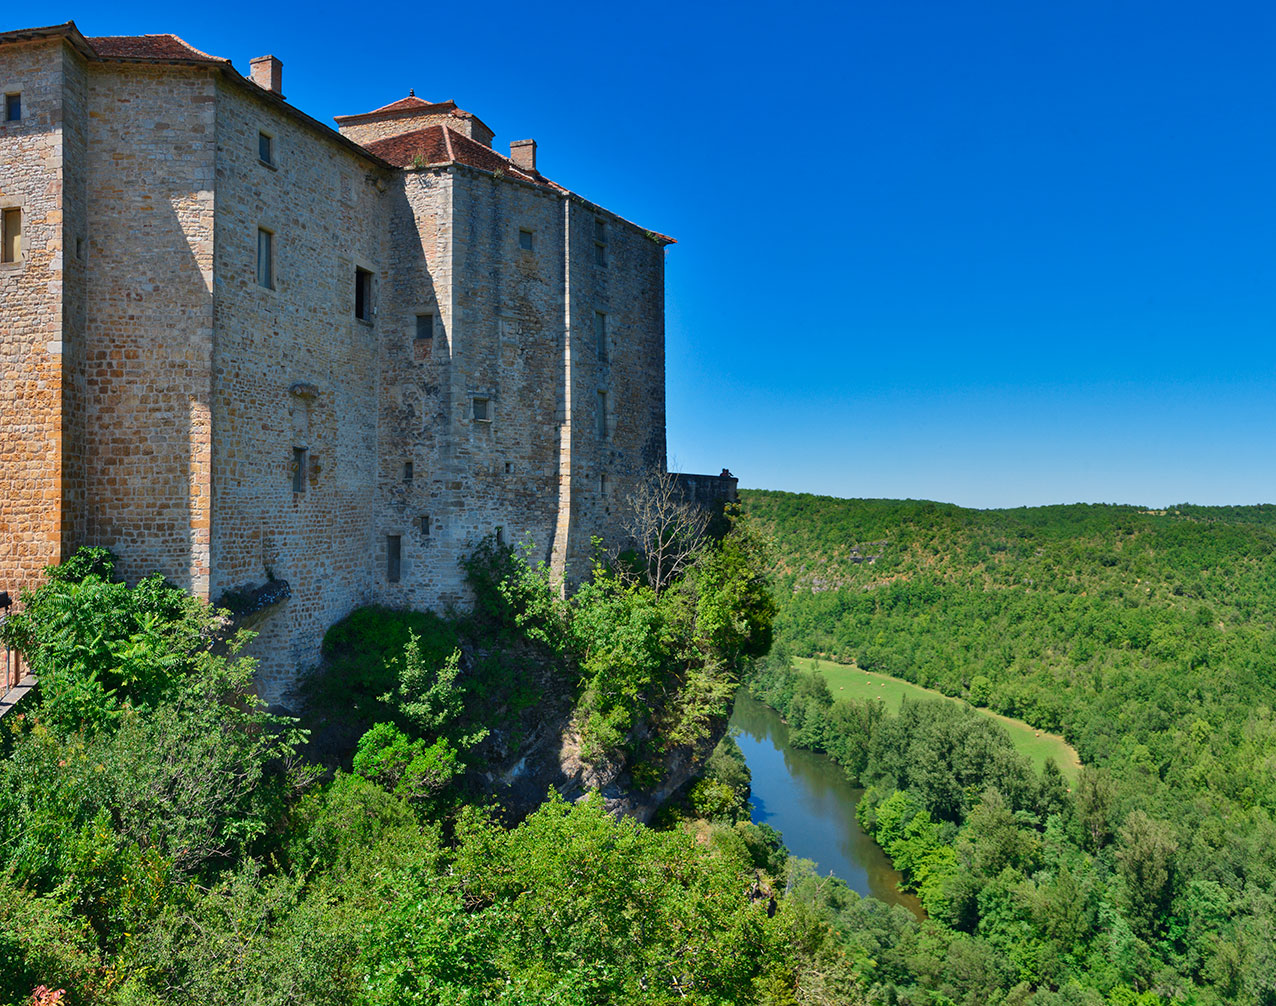 Chateau Bruniquel high above the river Aveyron